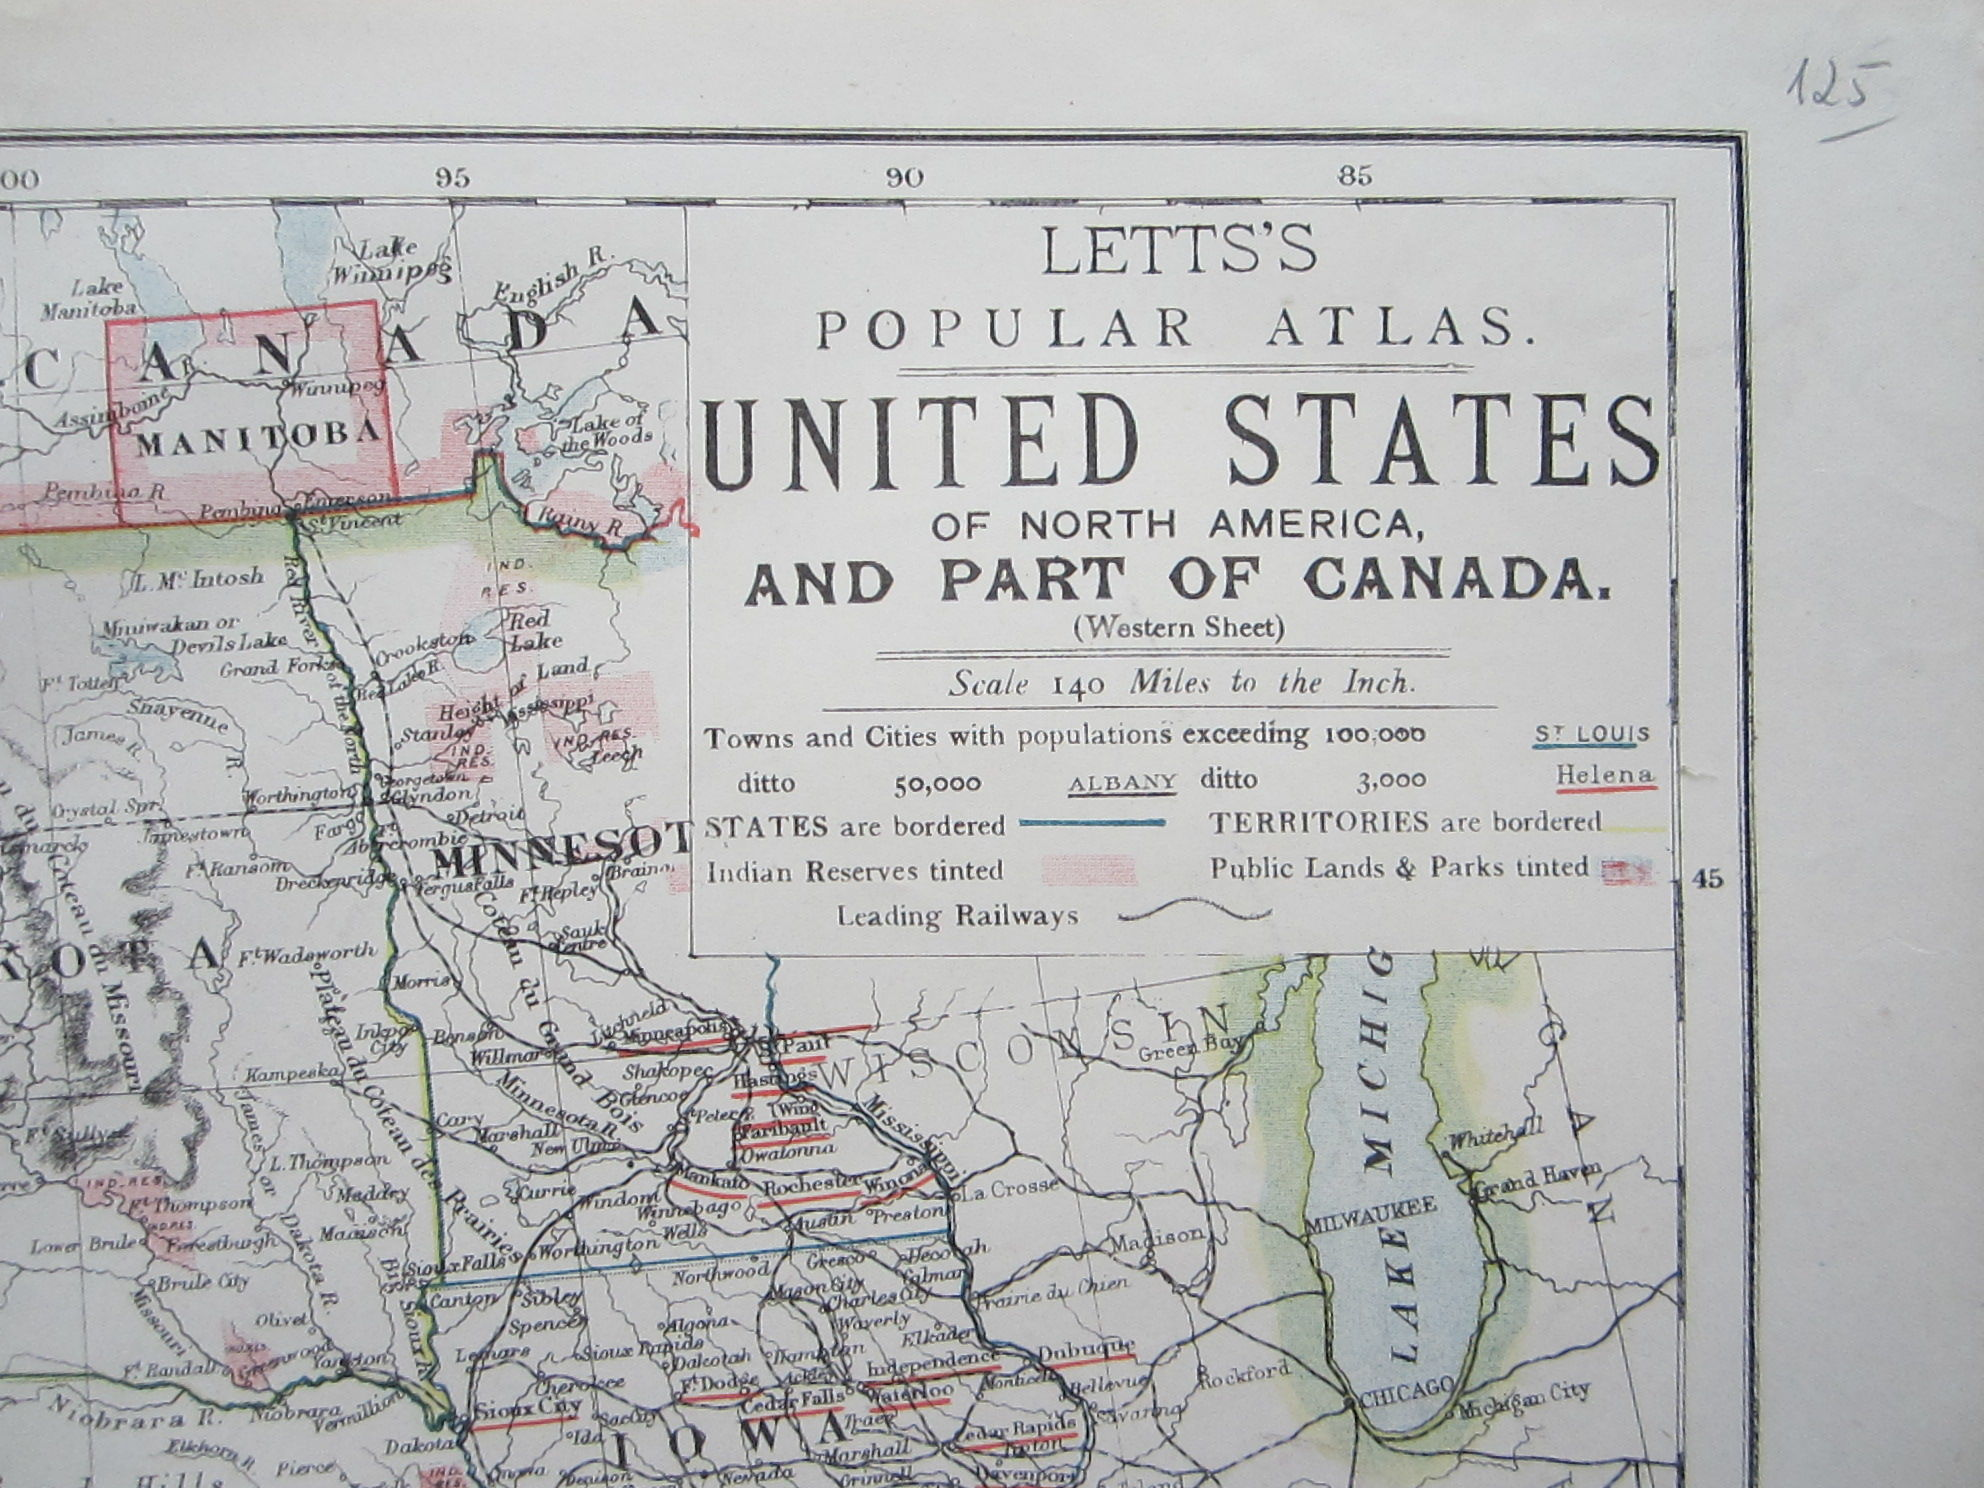 United States of North America, and Part of Canada (photo 2)